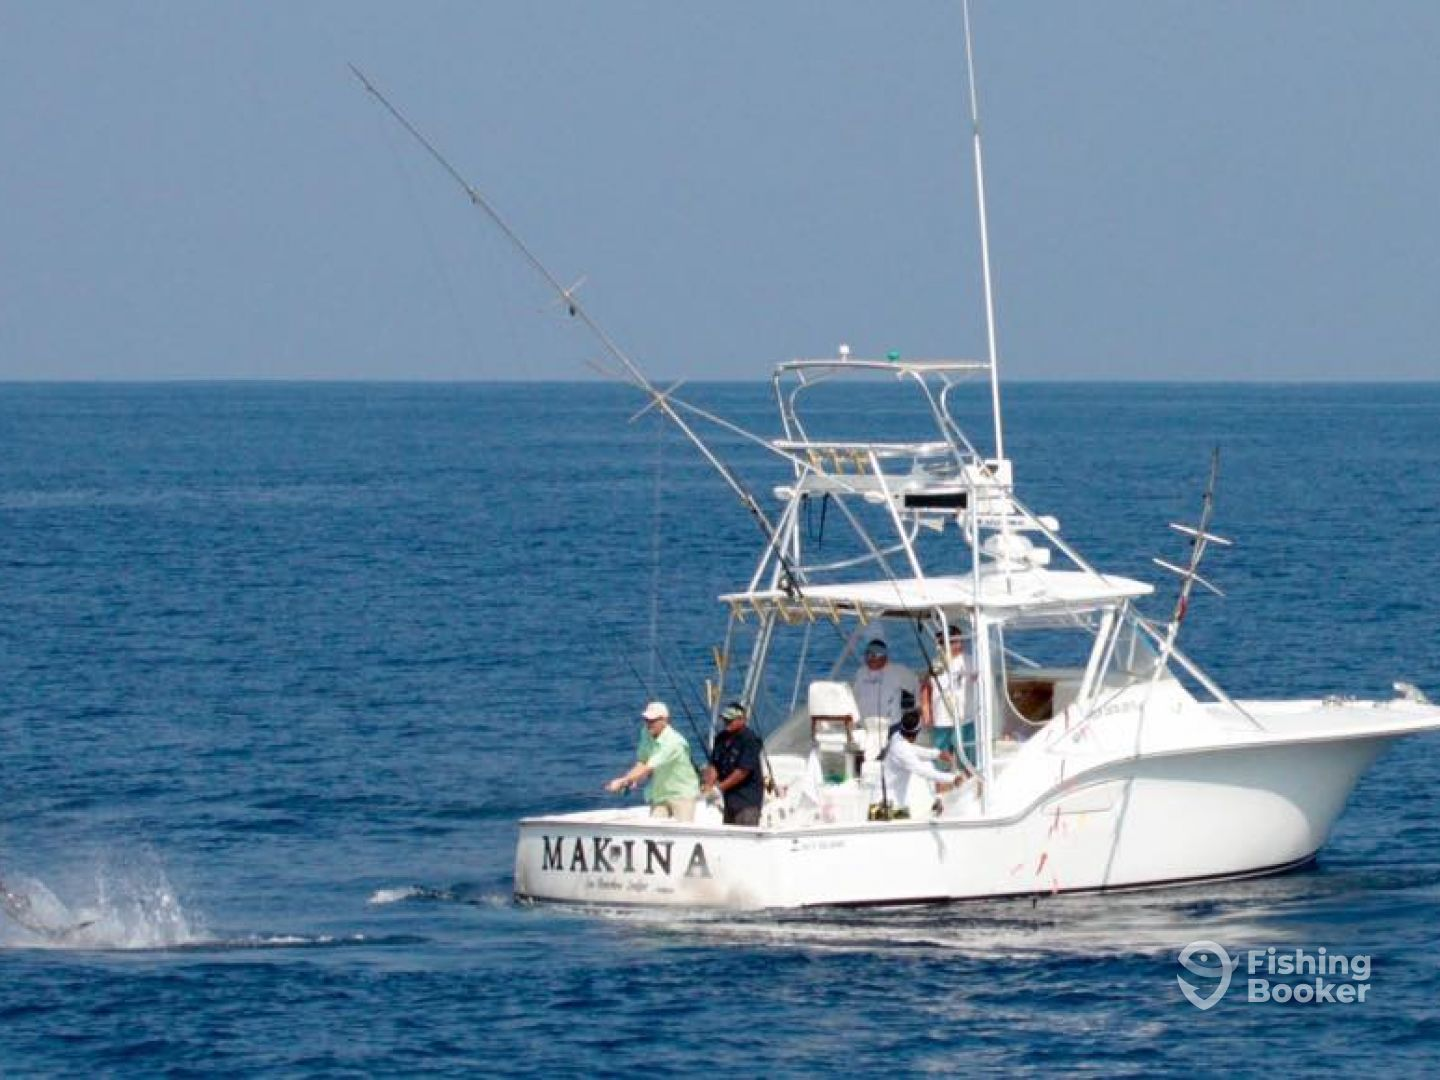 Makina Sportfishing